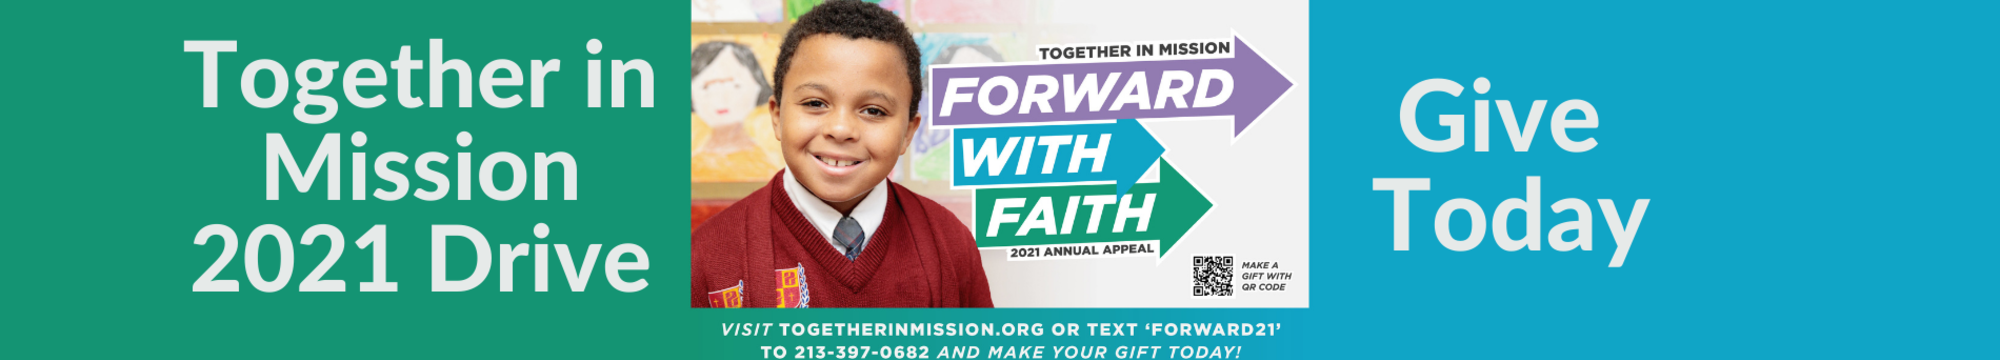 Together in Mission Campaign - Please Donate Today!